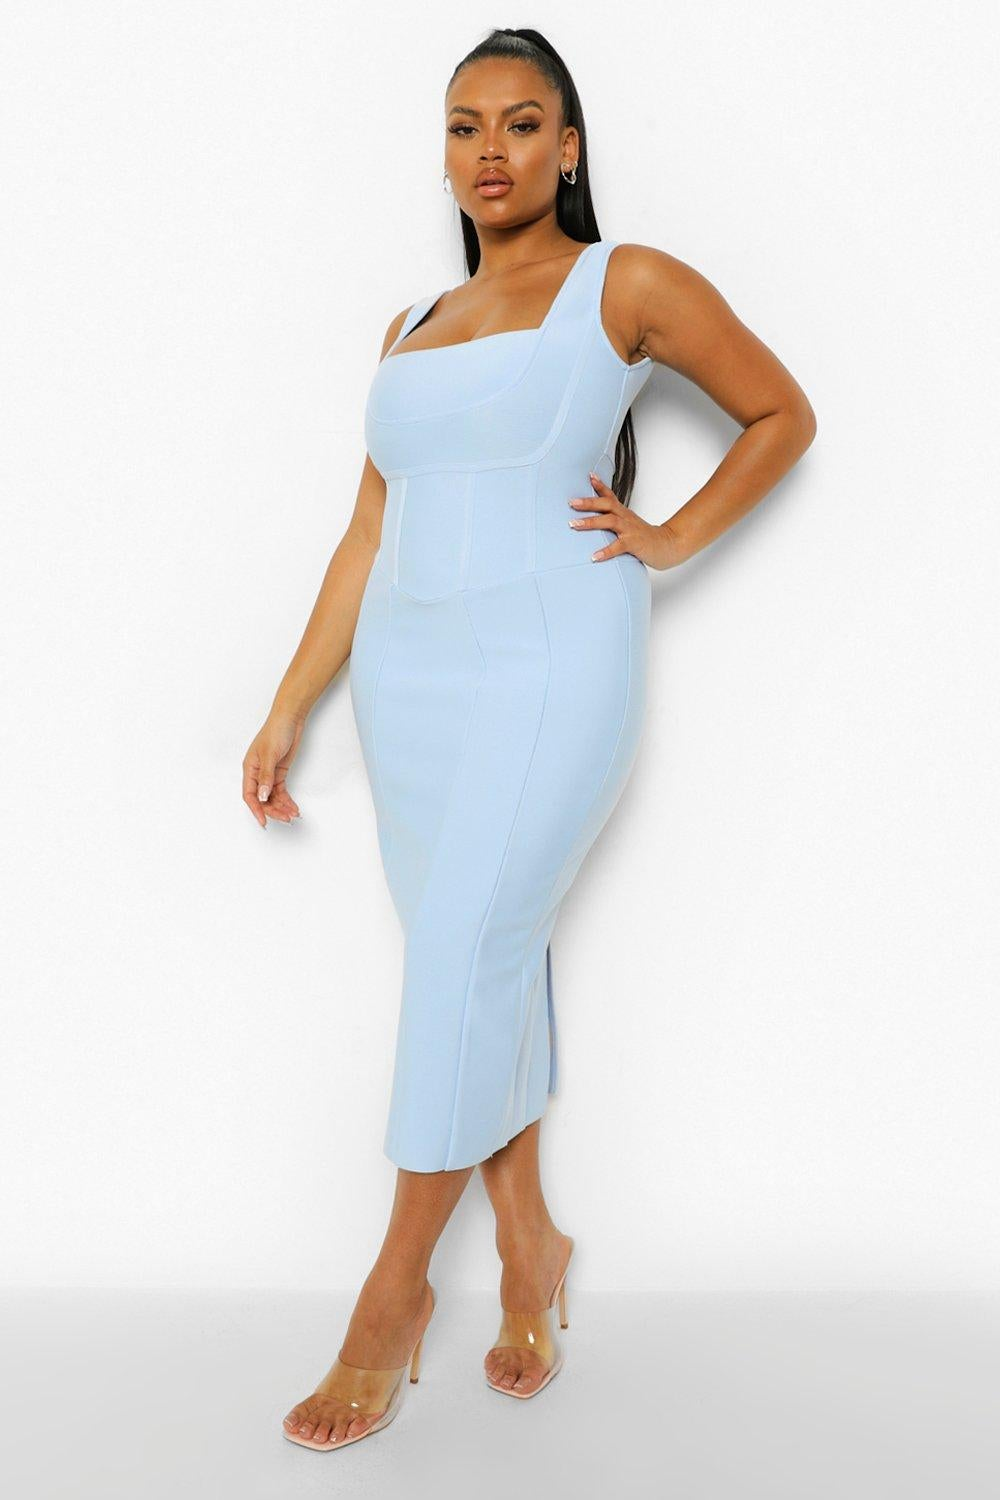 Model wearing bodycon baby blue midi dress with subtle seams on it